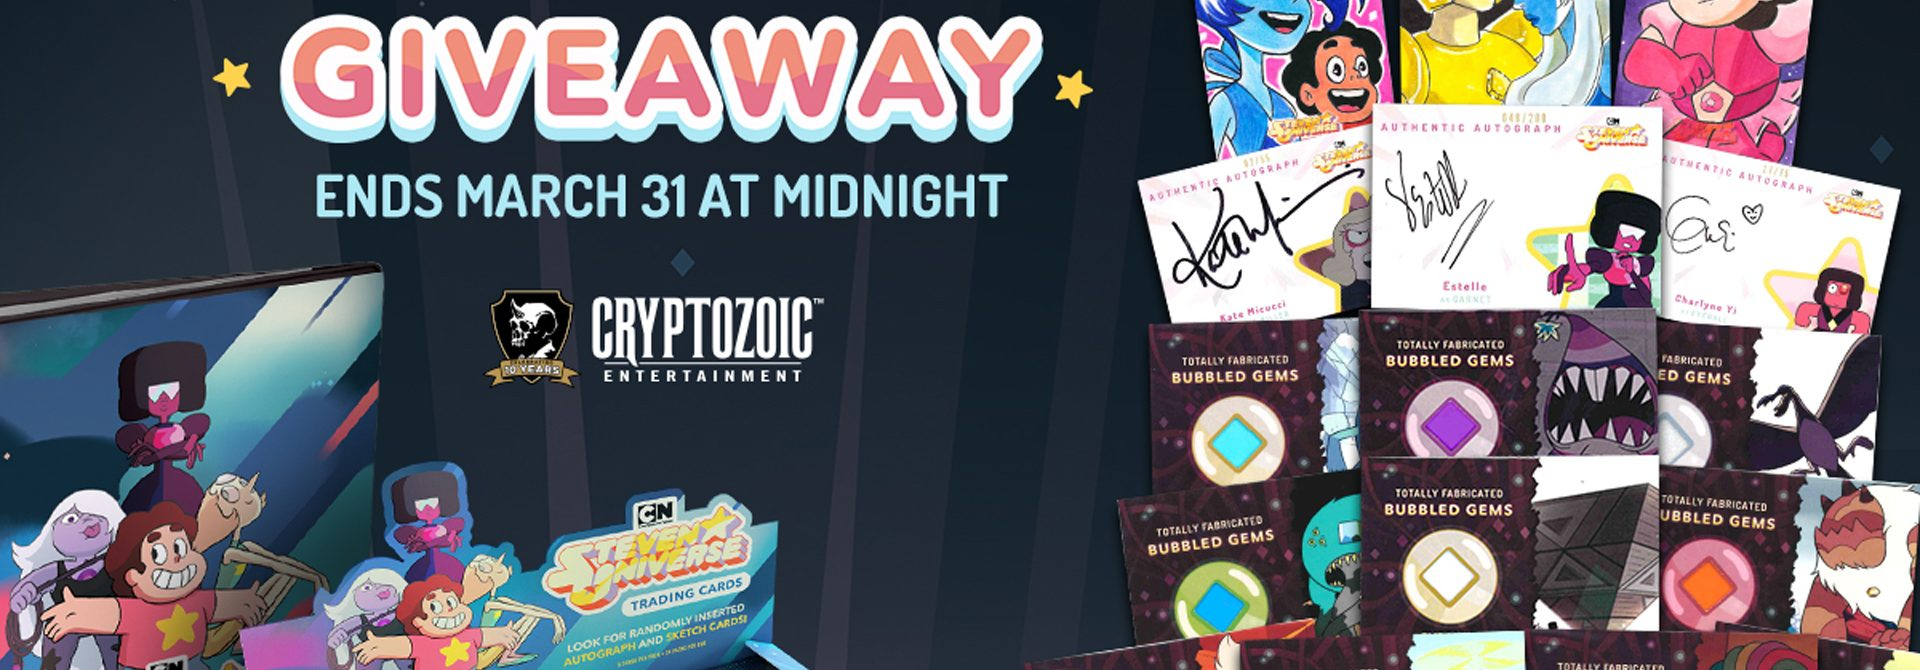 Cryptozoic's Steven Universe Giveaway